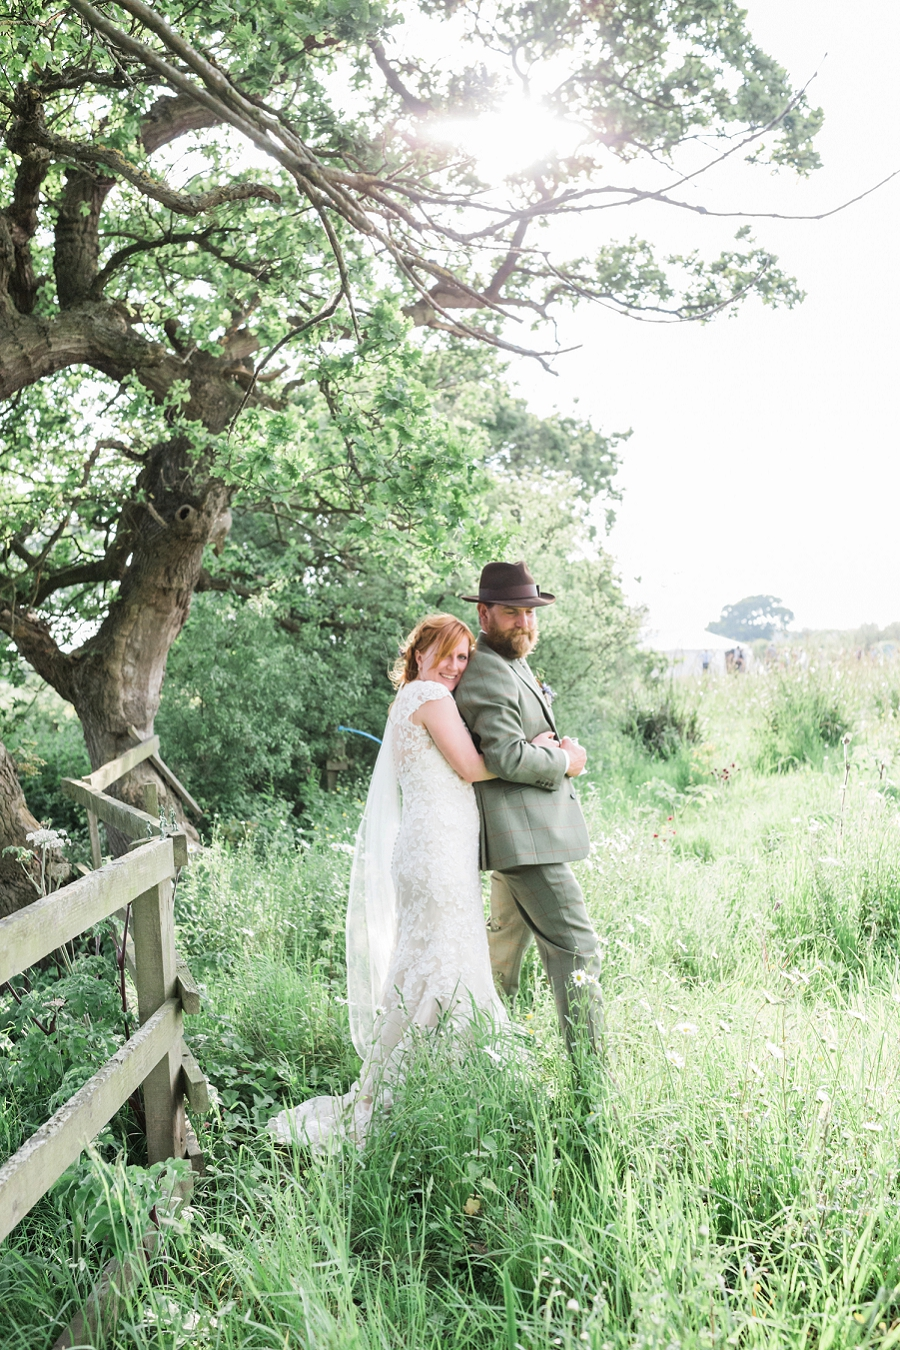 Sarah Janes Photography, Wedding photographer Chester, London, Sheffield, Wirral, Wrexham, Liverpool, Natural wedding photography, Quirky, documentary_0356.jpg